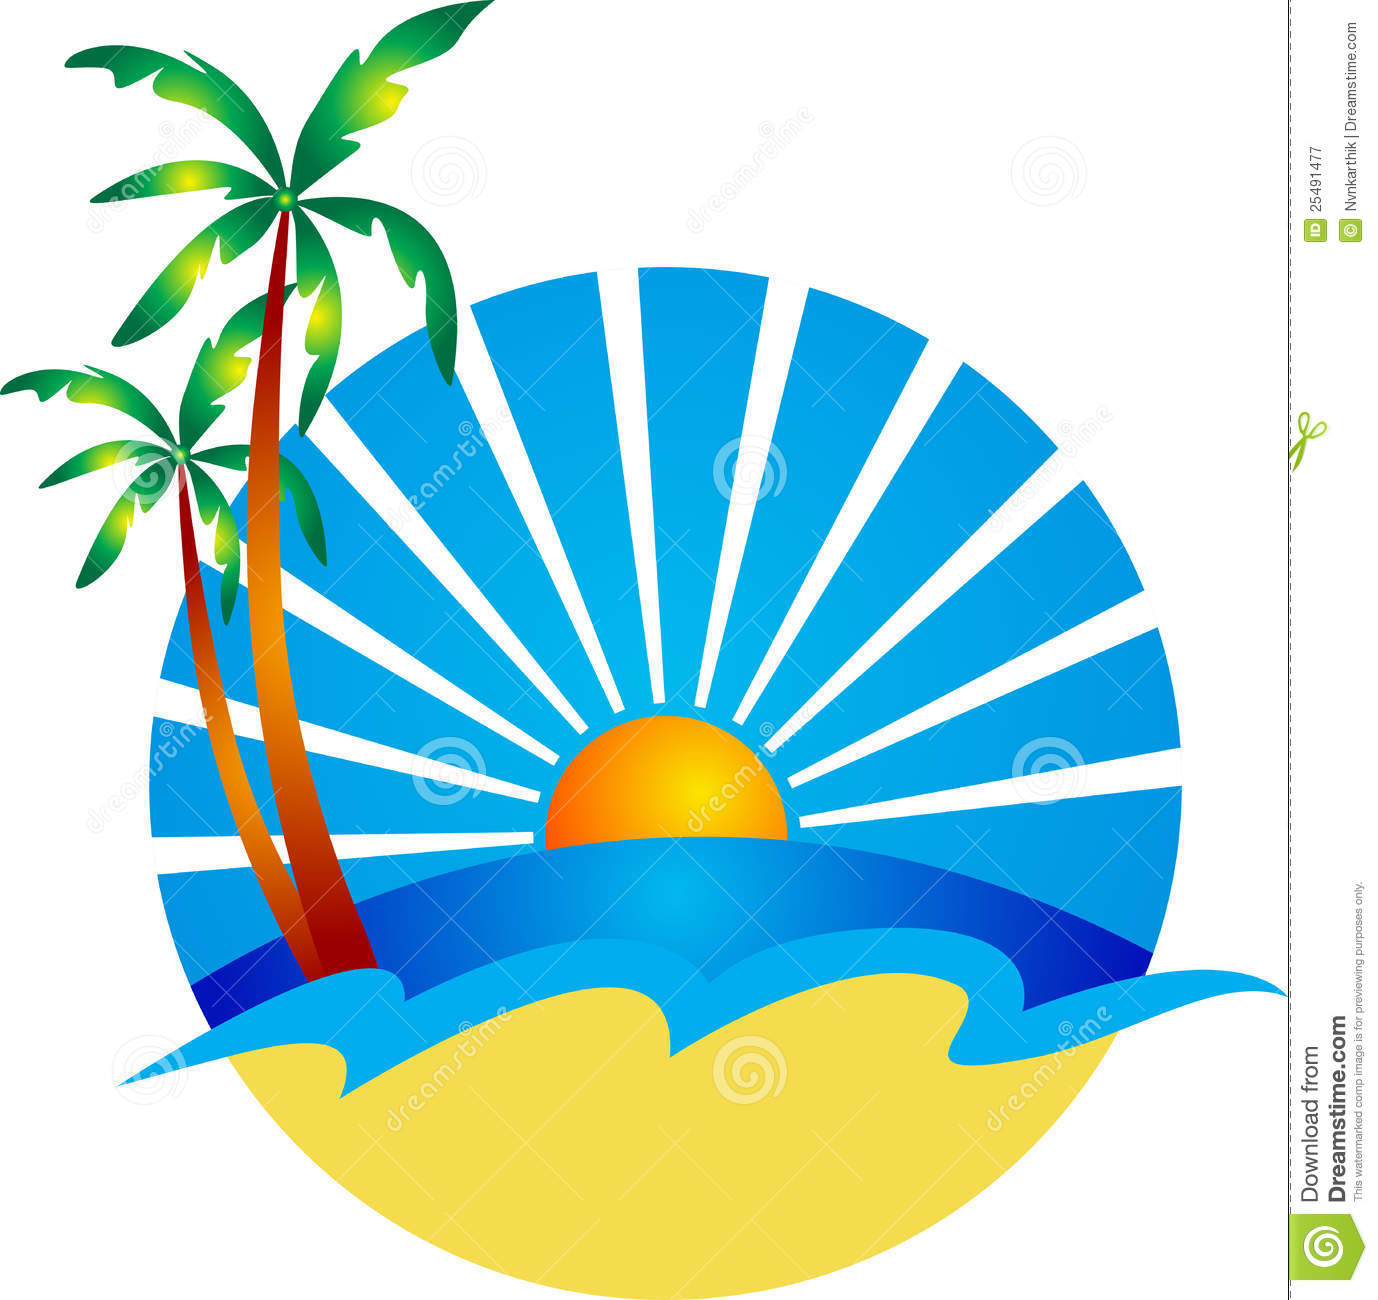 Beach logo royalty free stock photography image 25491477 for Beach design